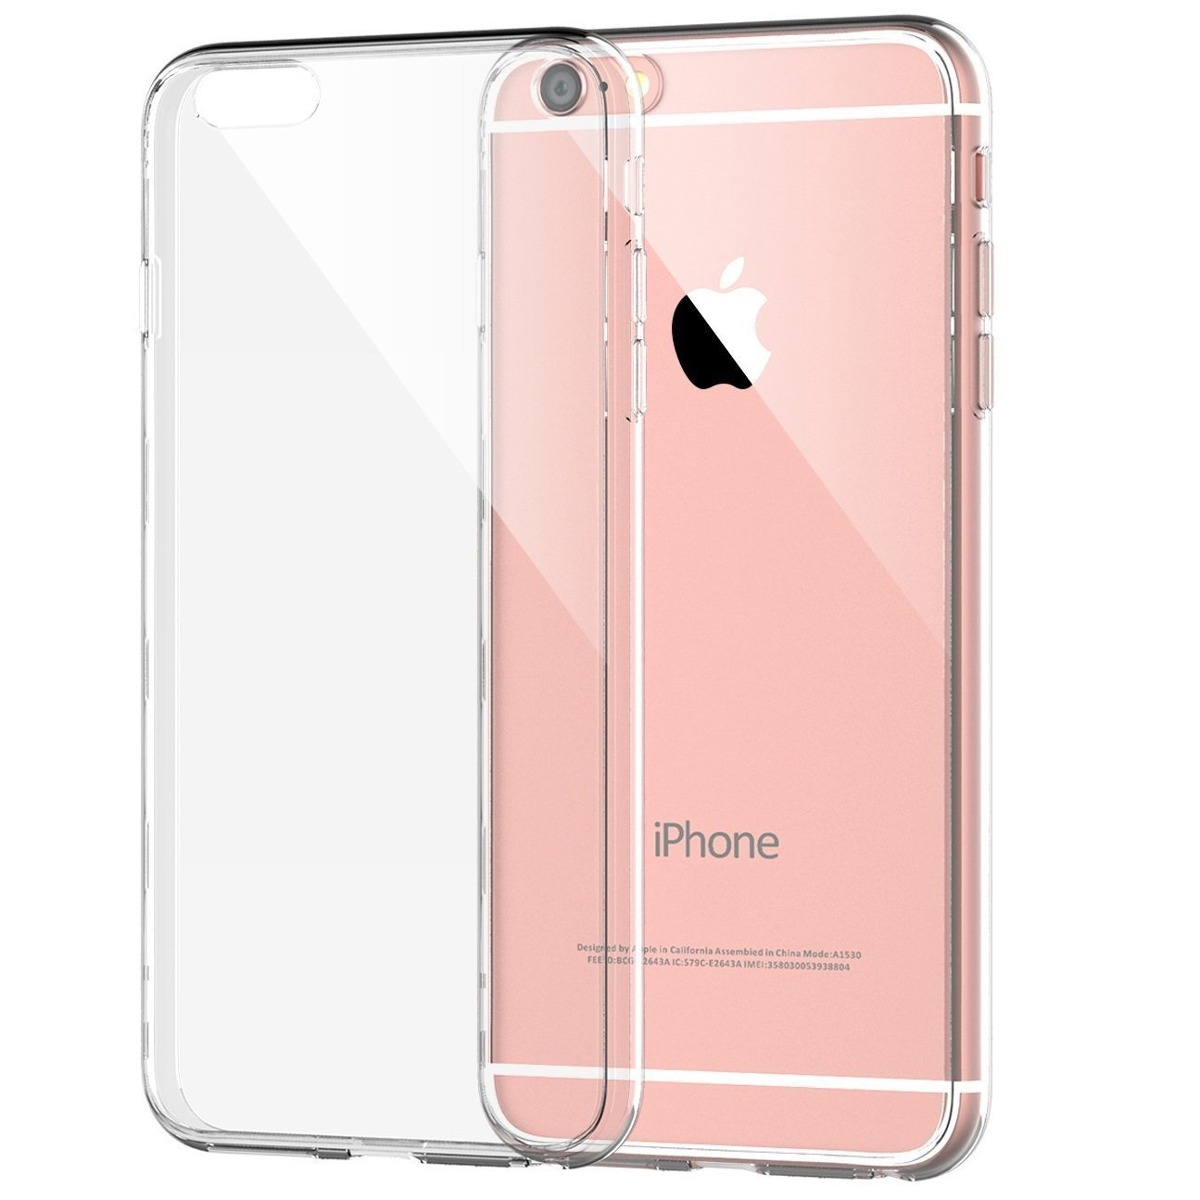 3ae07195bbb estuche flexigel slim transparente celulares iphone 6 s plus. Cargando zoom.